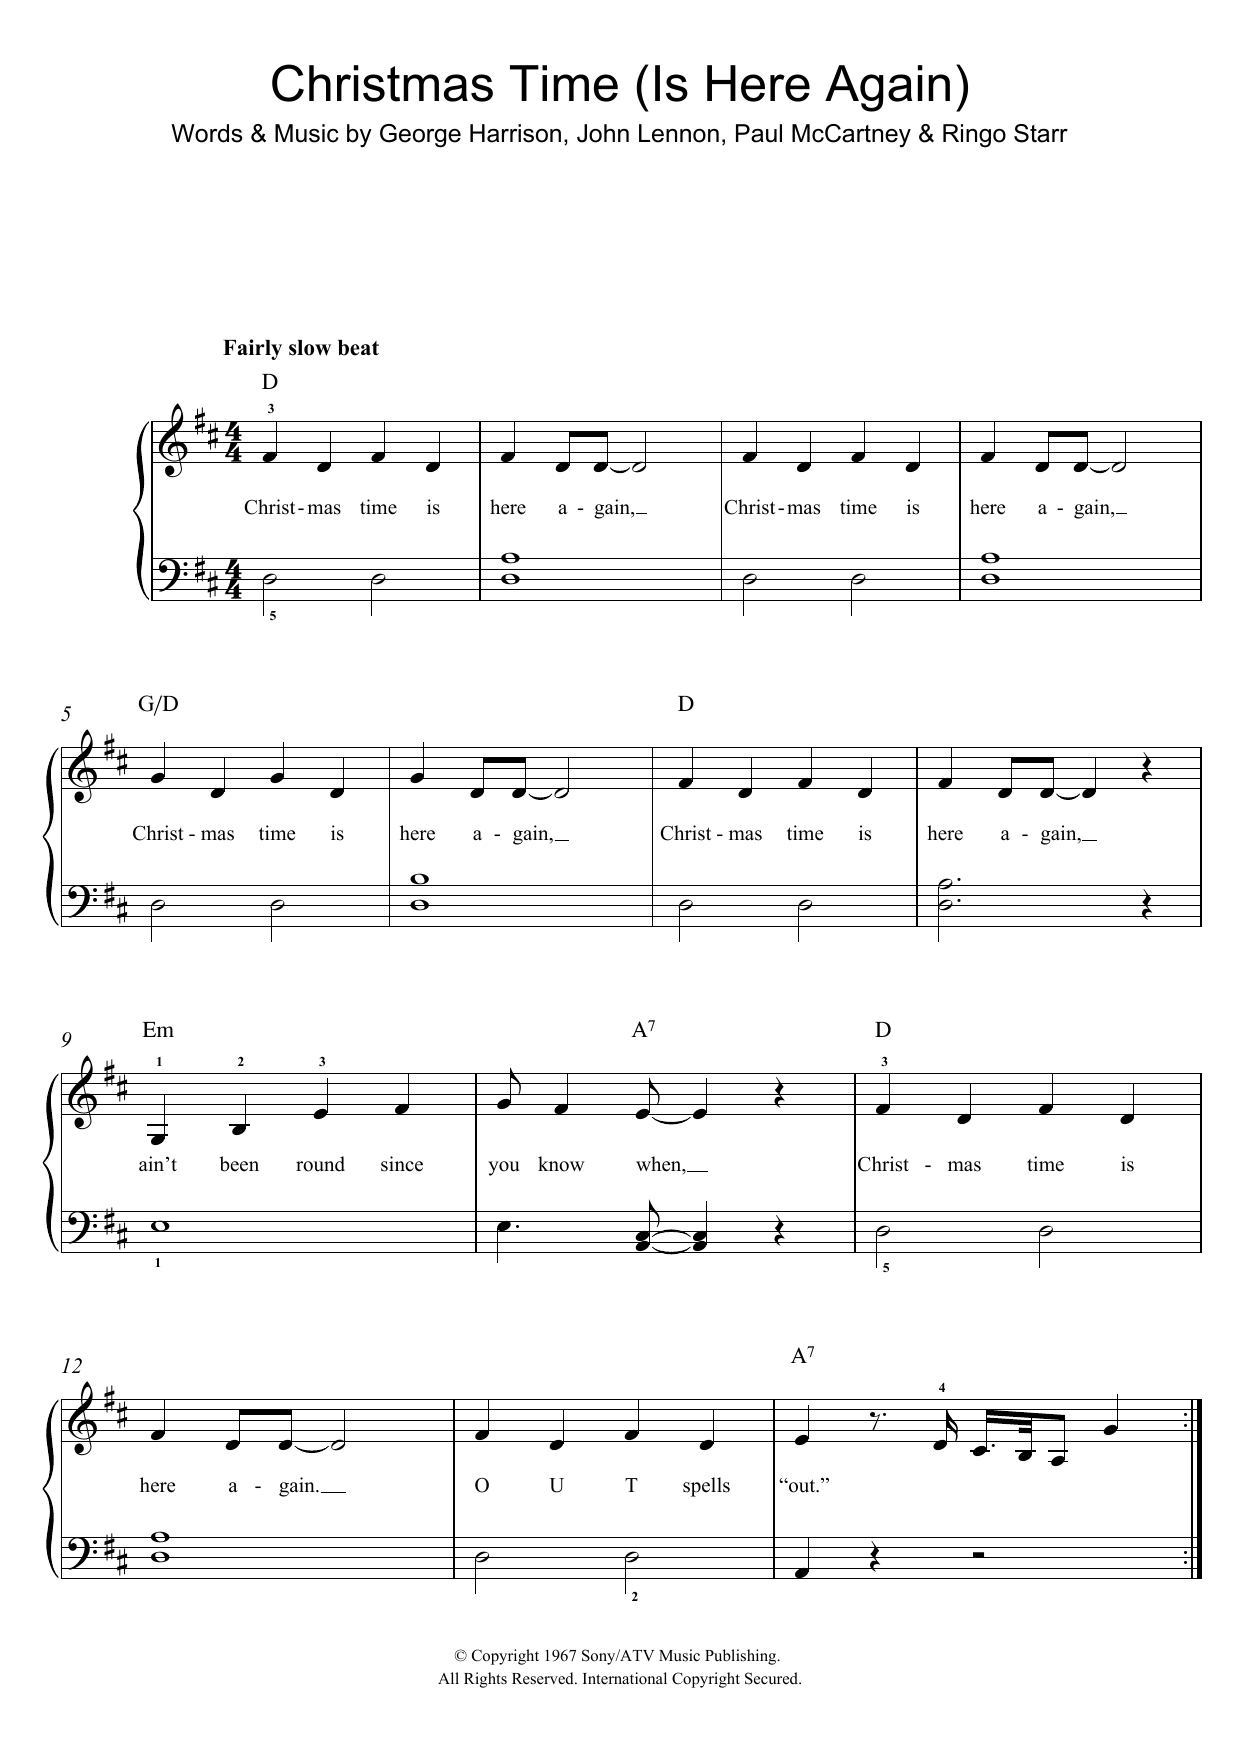 Christmas Time Is Here Sheet Music.Christmas Time Is Here Again